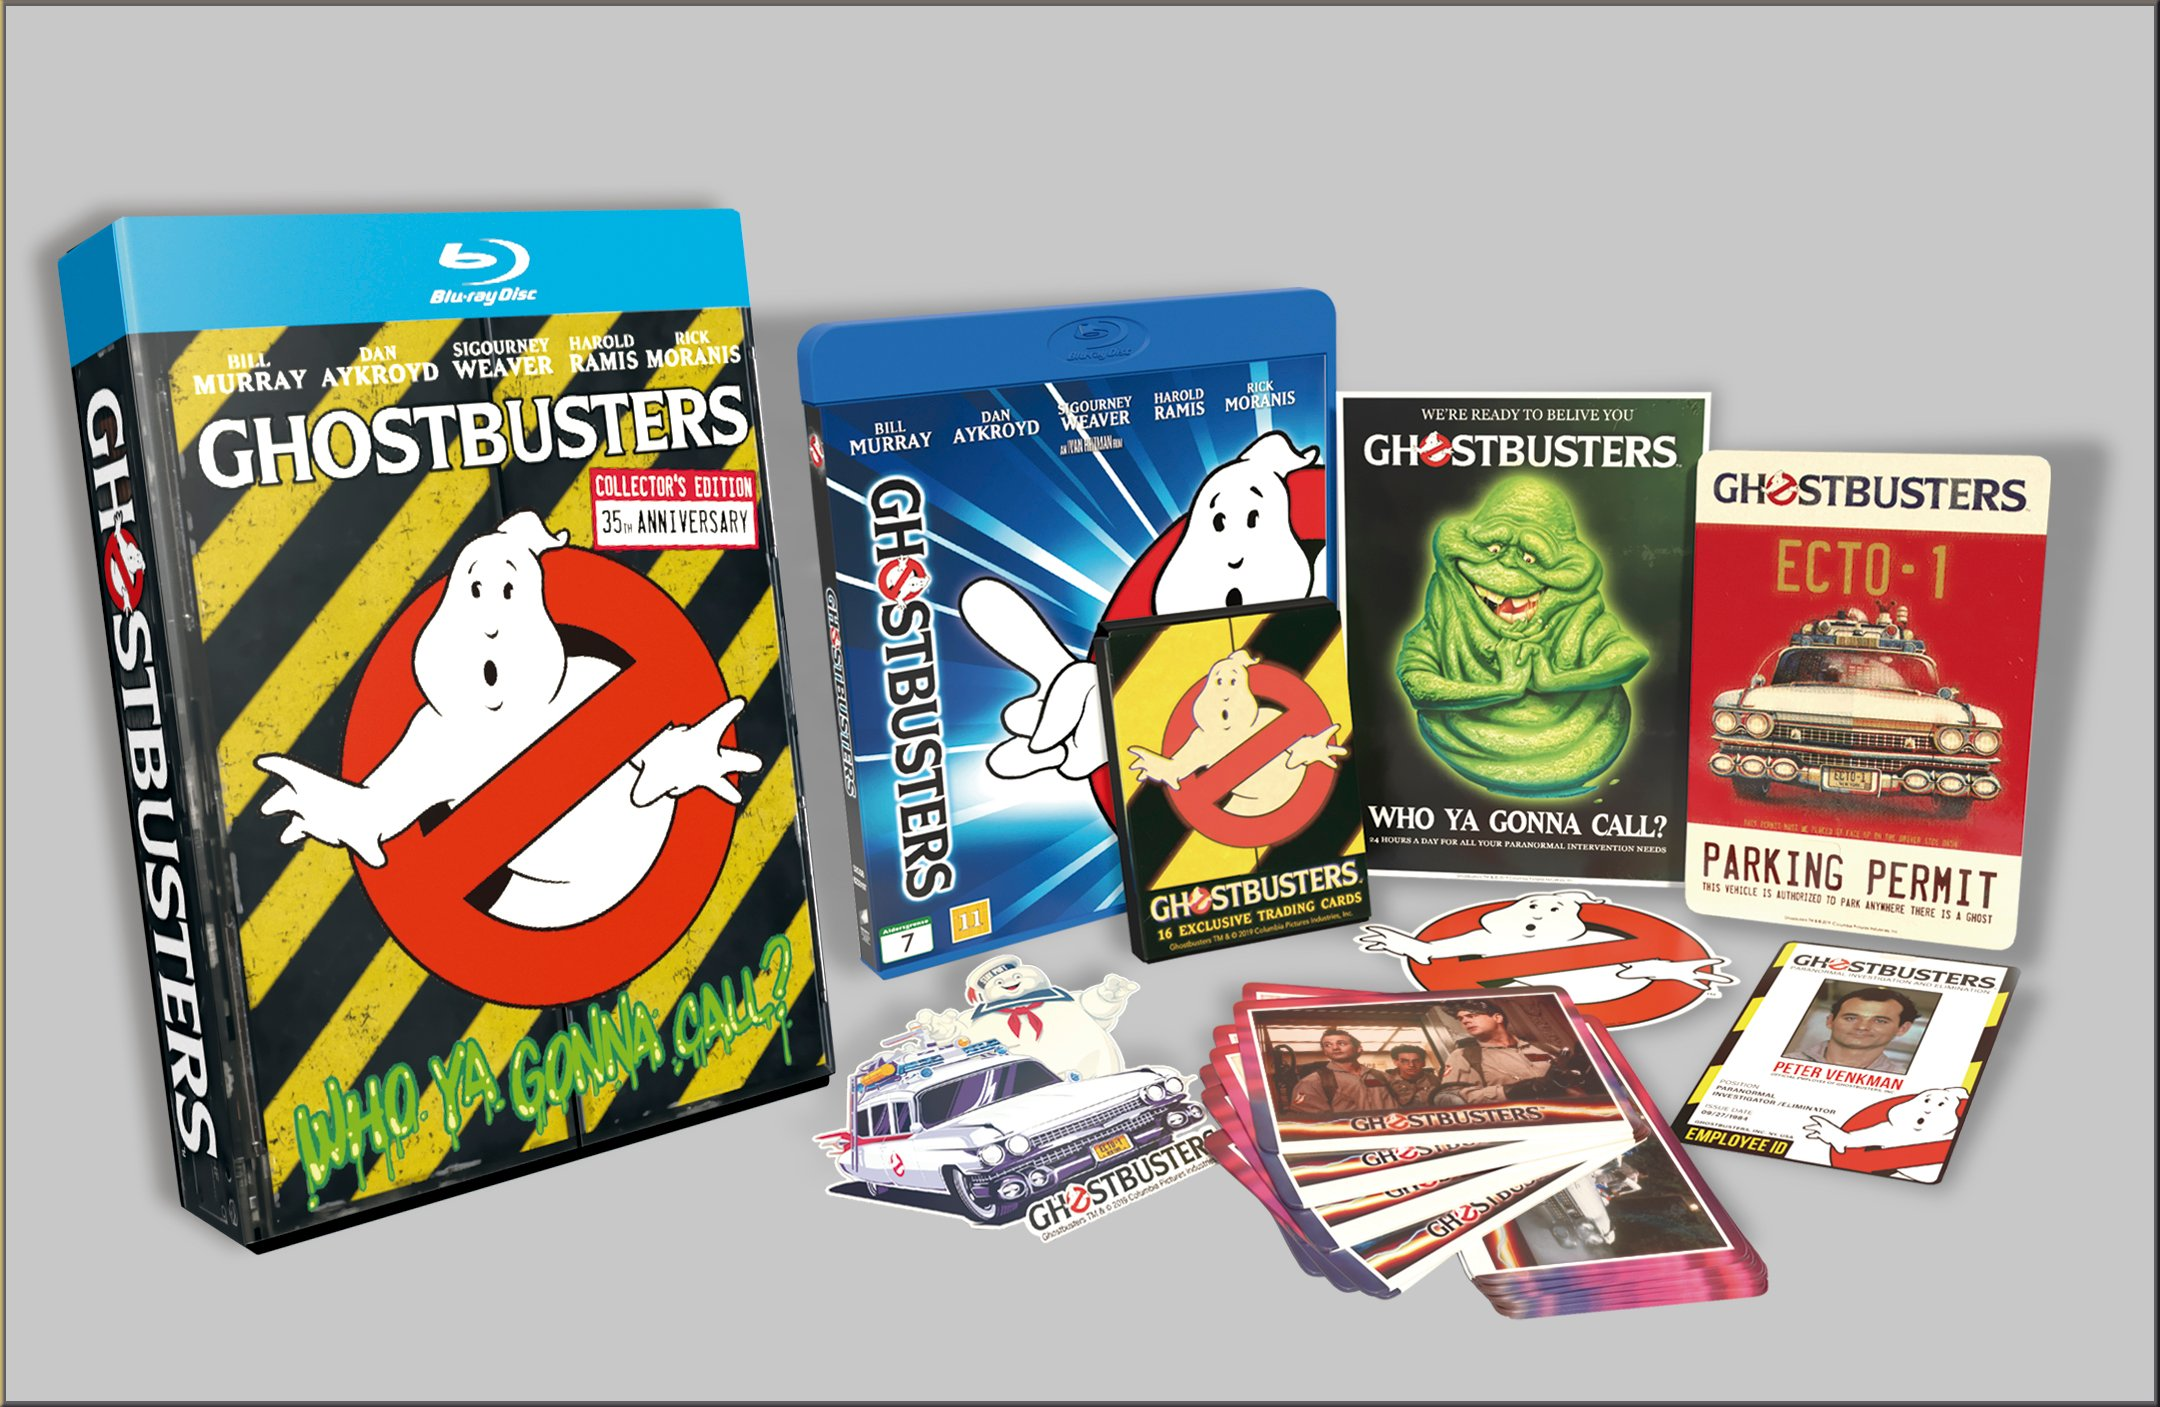 Ghostbusters 35'th anniversary giftset - Blu ray